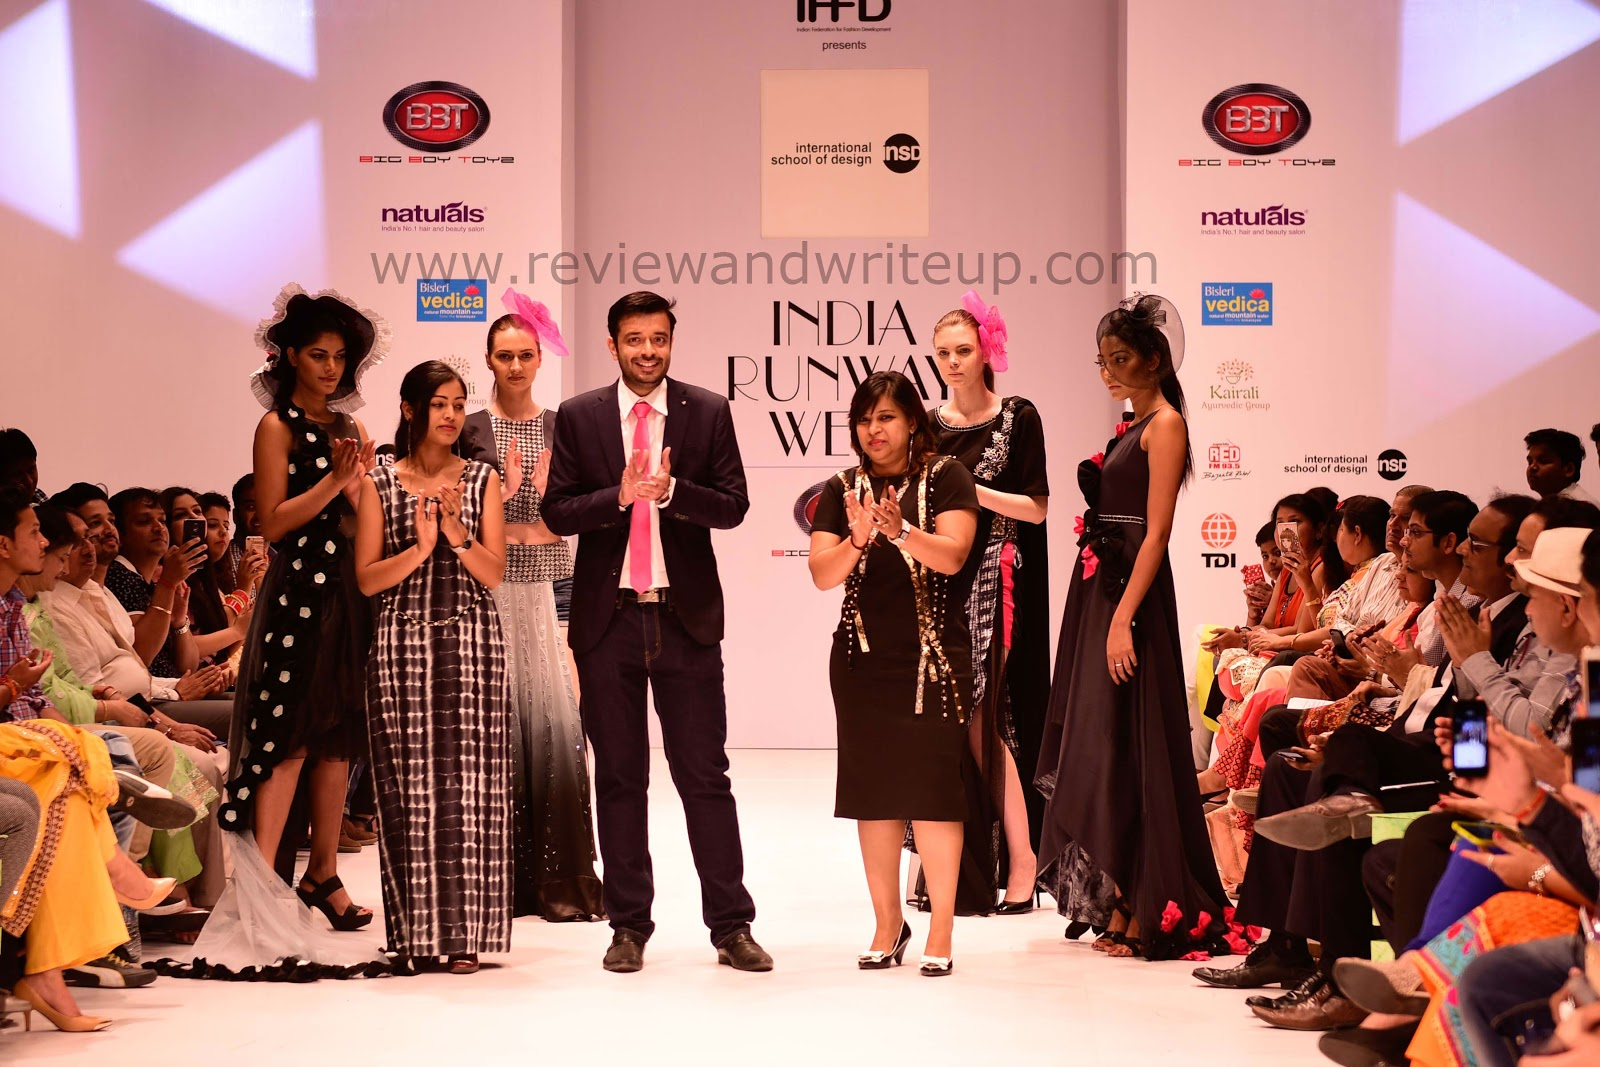 India Runway Week INSD Think Design 2016